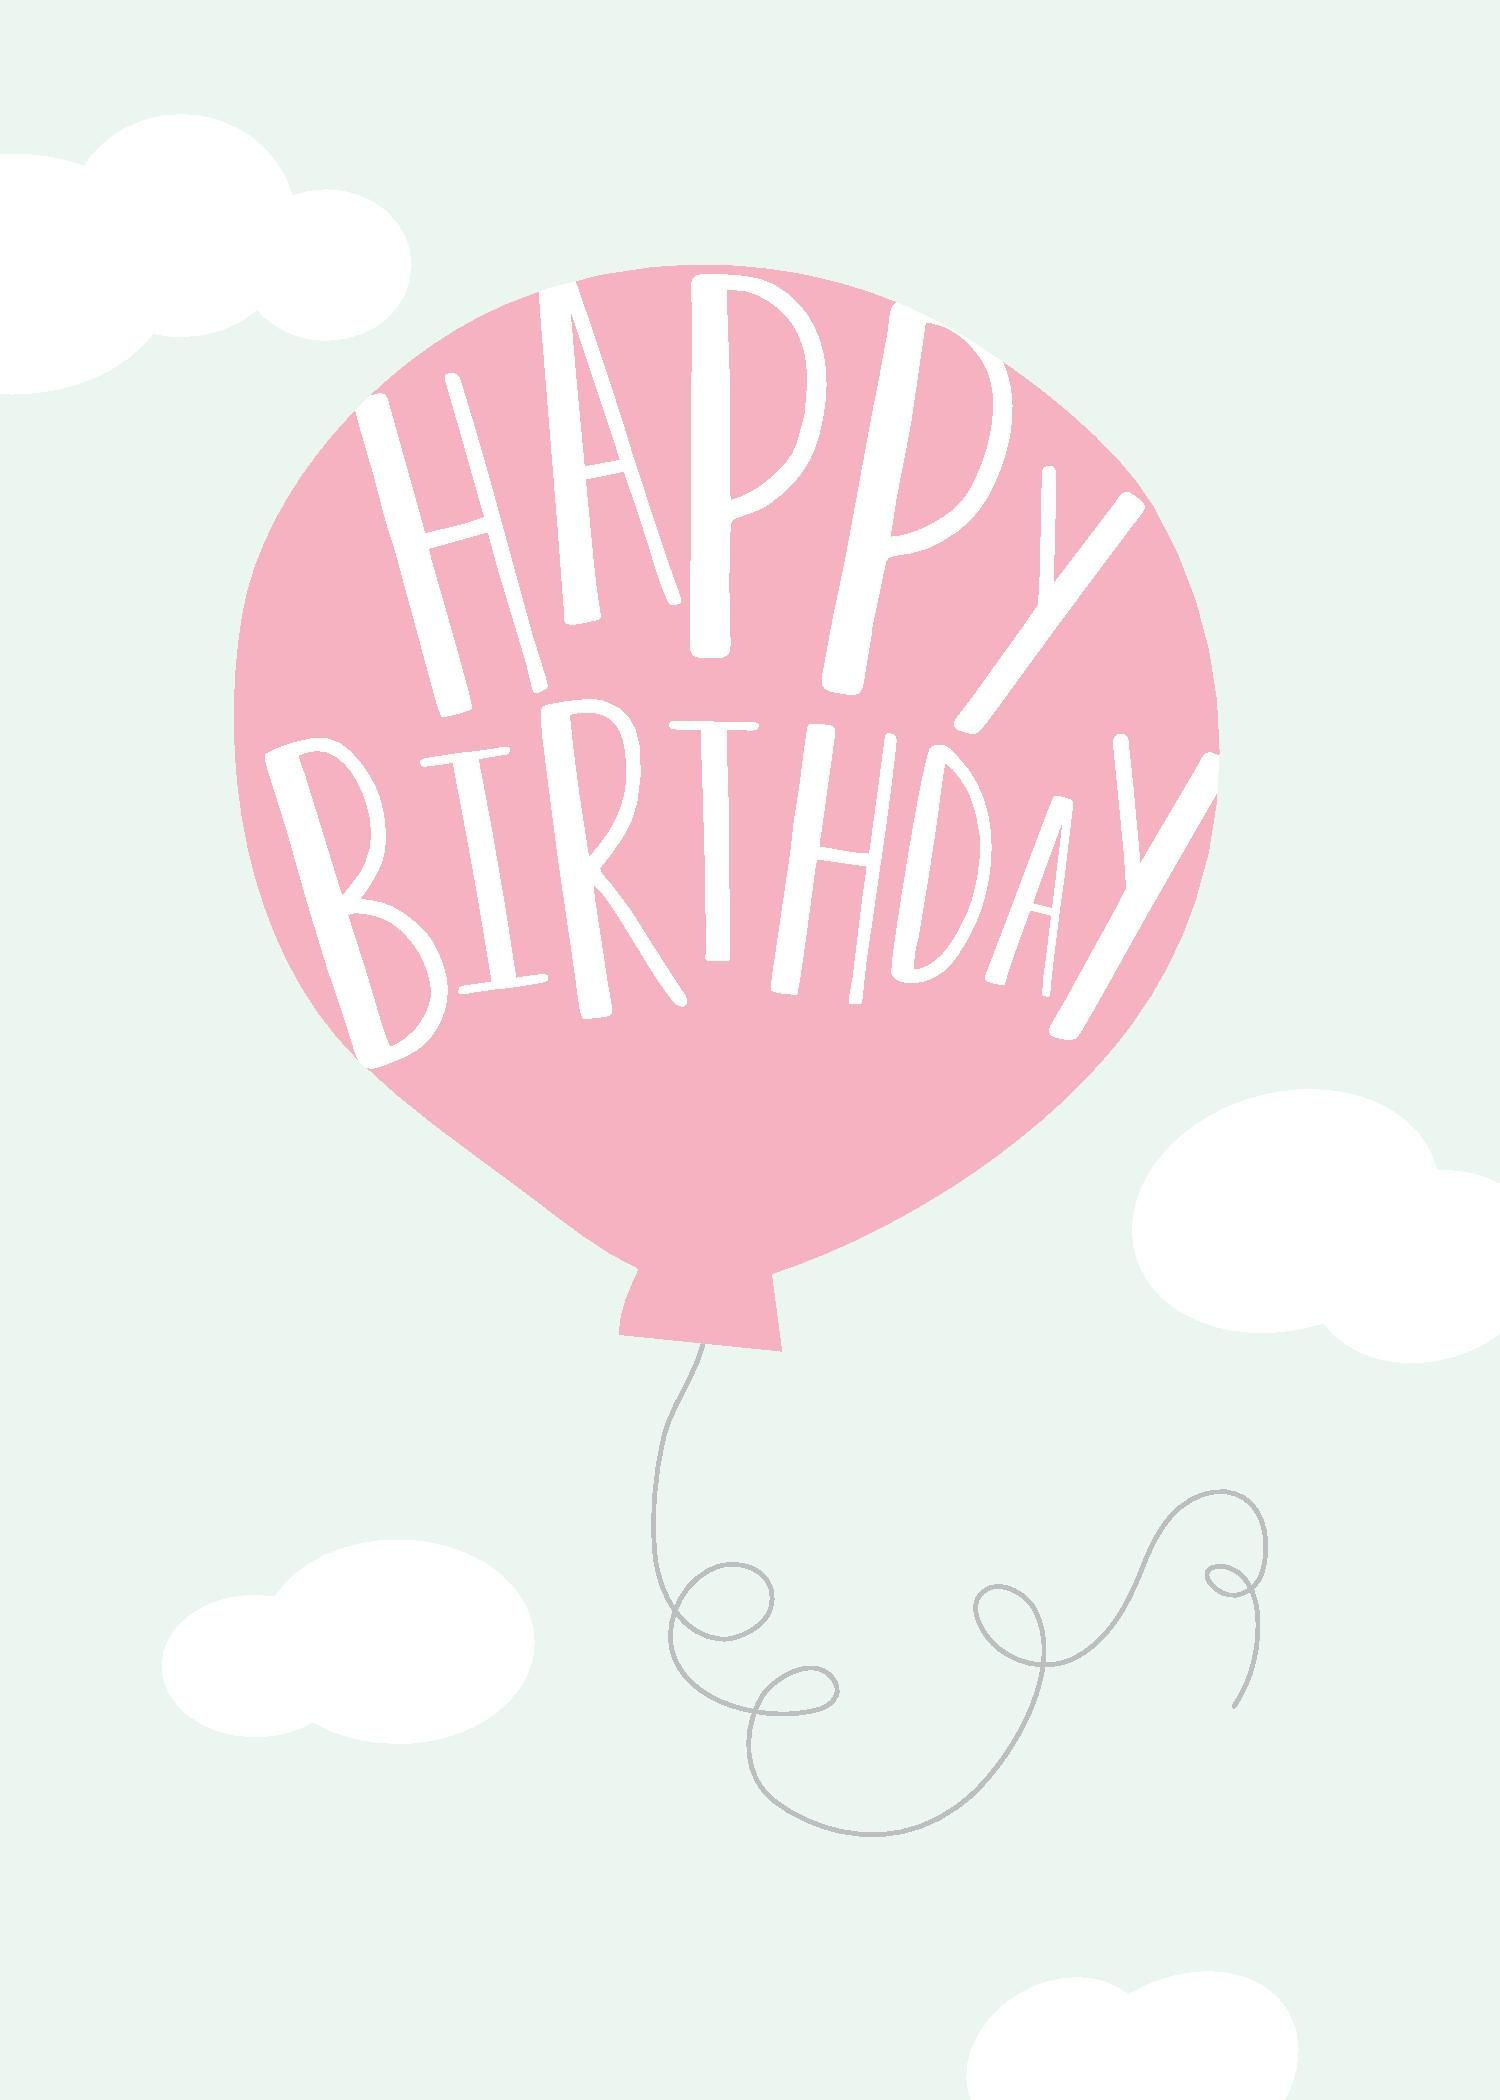 Happy Birthday Greeting Card With Pink Baloon Design By Print